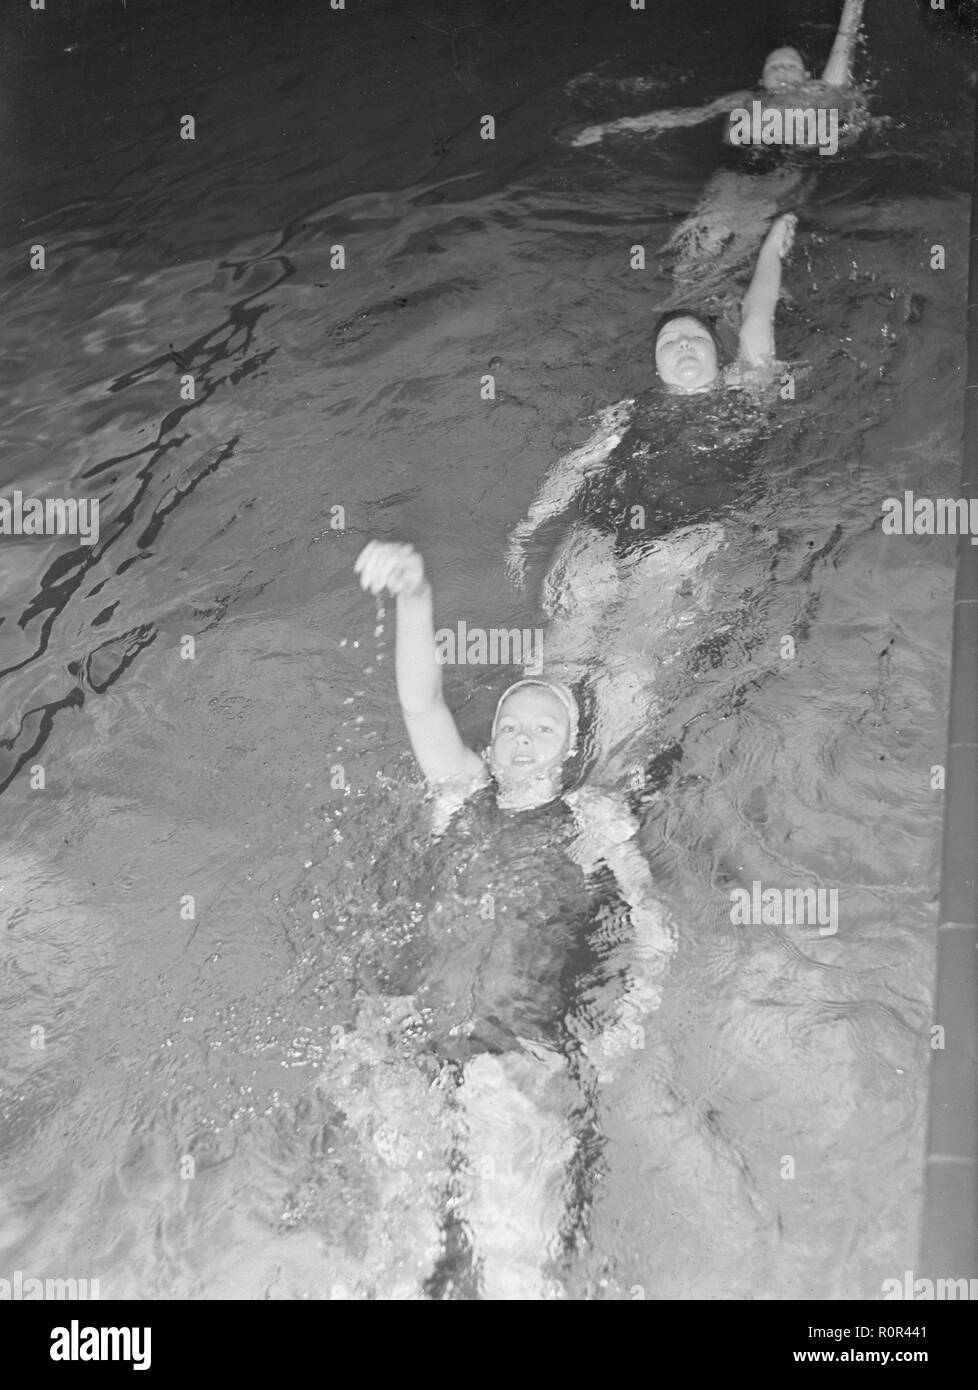 Swimming practice in the 1940s. Three young women are practising backstroke swimming.  March 1940 Sweden Photo Kristoffersson ref 83-2 - Stock Image